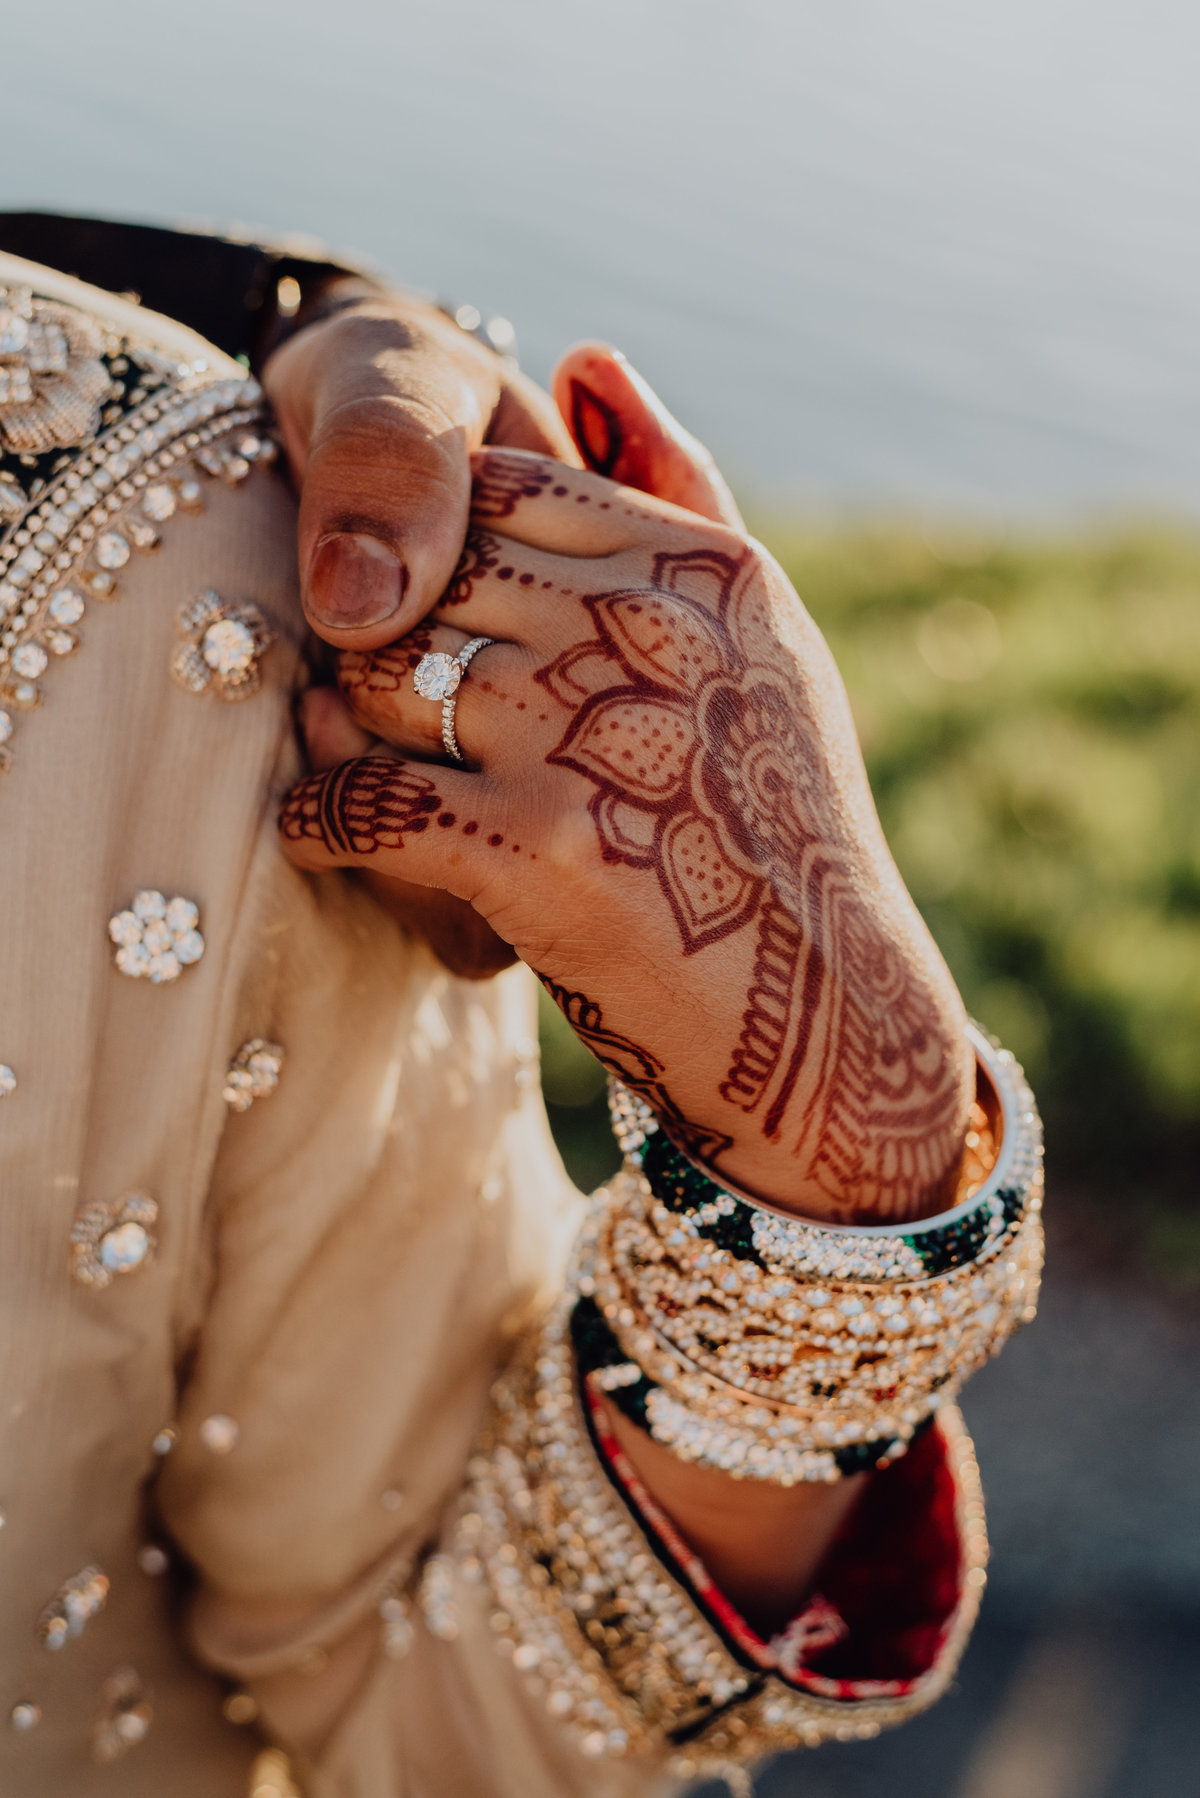 Sunshine_Shannon_Photography_Indian_Wedding_San_Francisco-4614